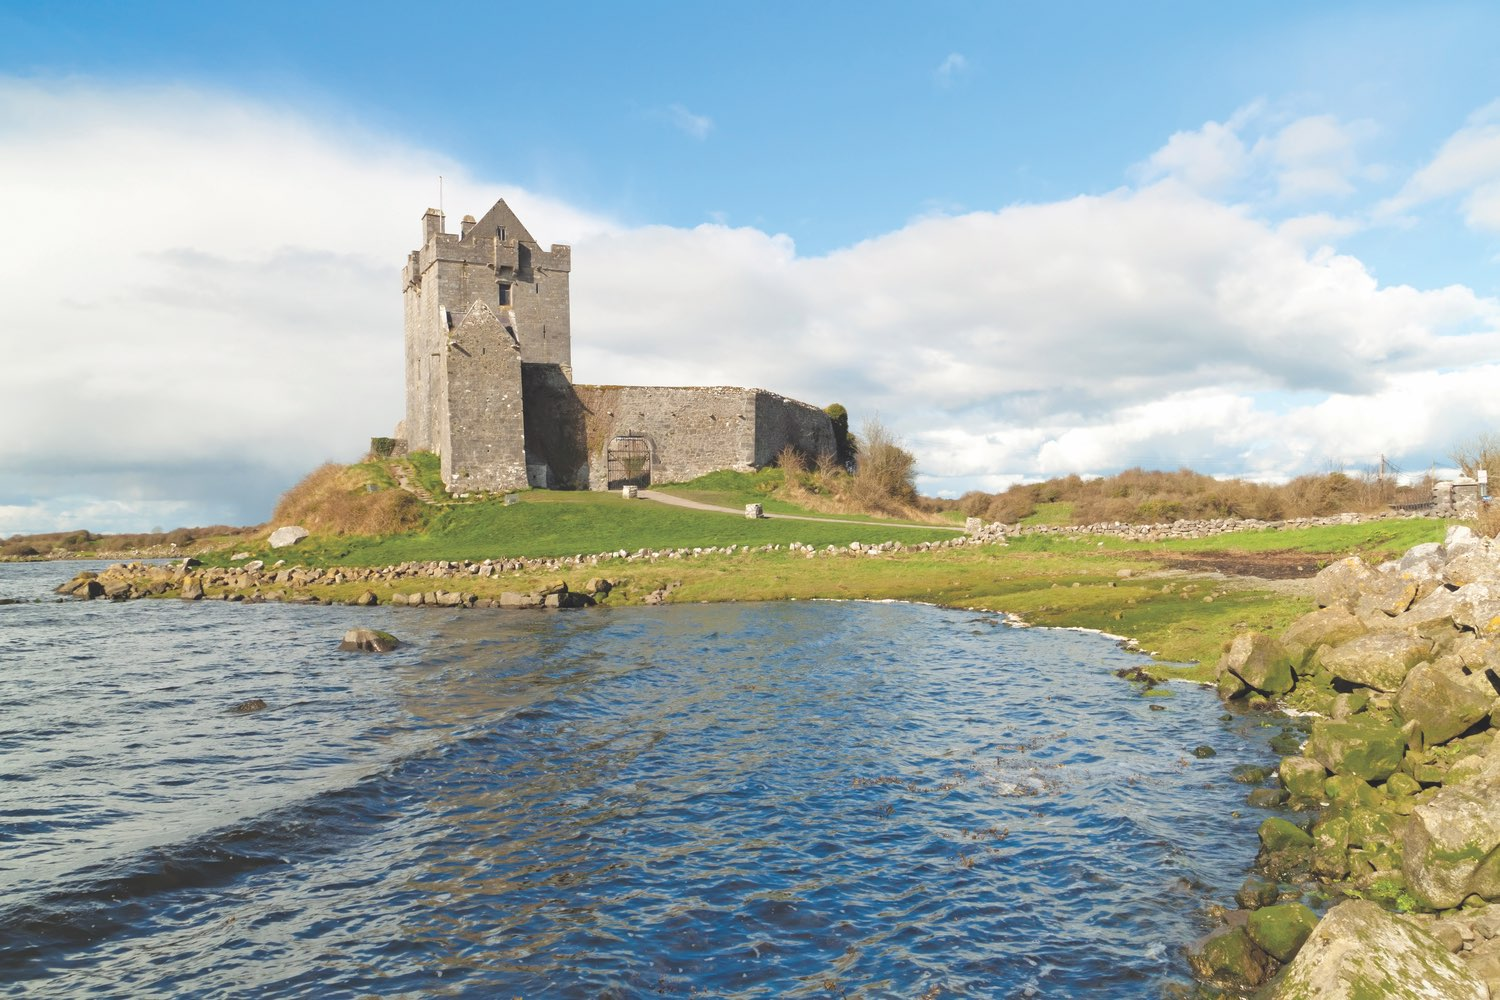 Dunguaire Castle is a sixteenth-century tower fortress near Kinvara in County Galway